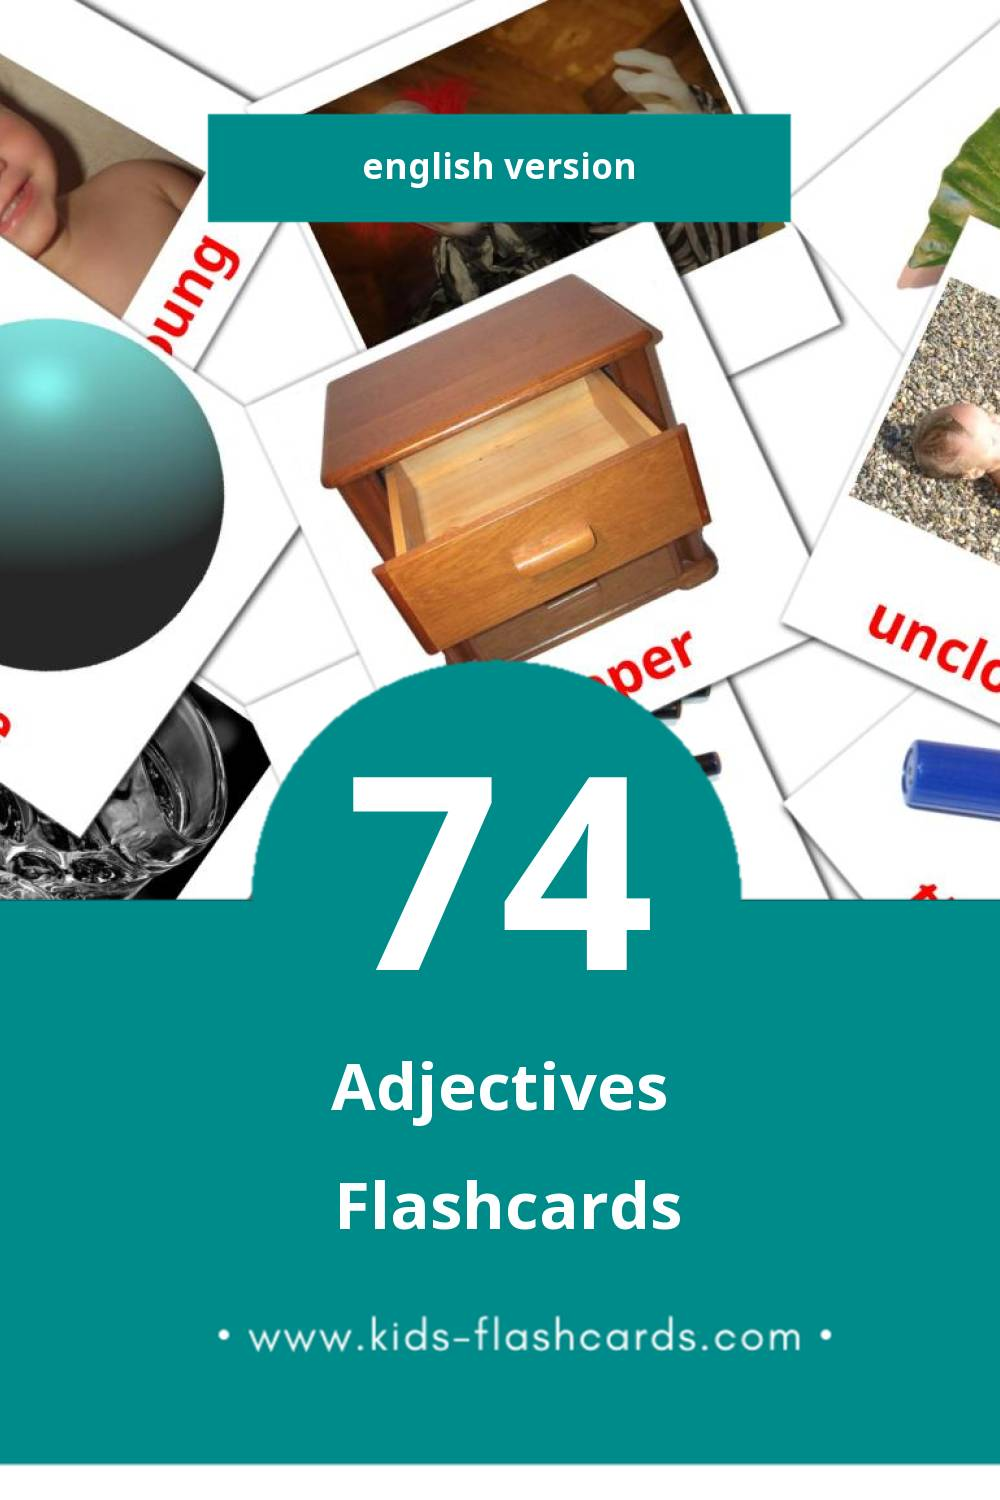 Visual Adjectives Flashcards for Toddlers (74 cards in English)